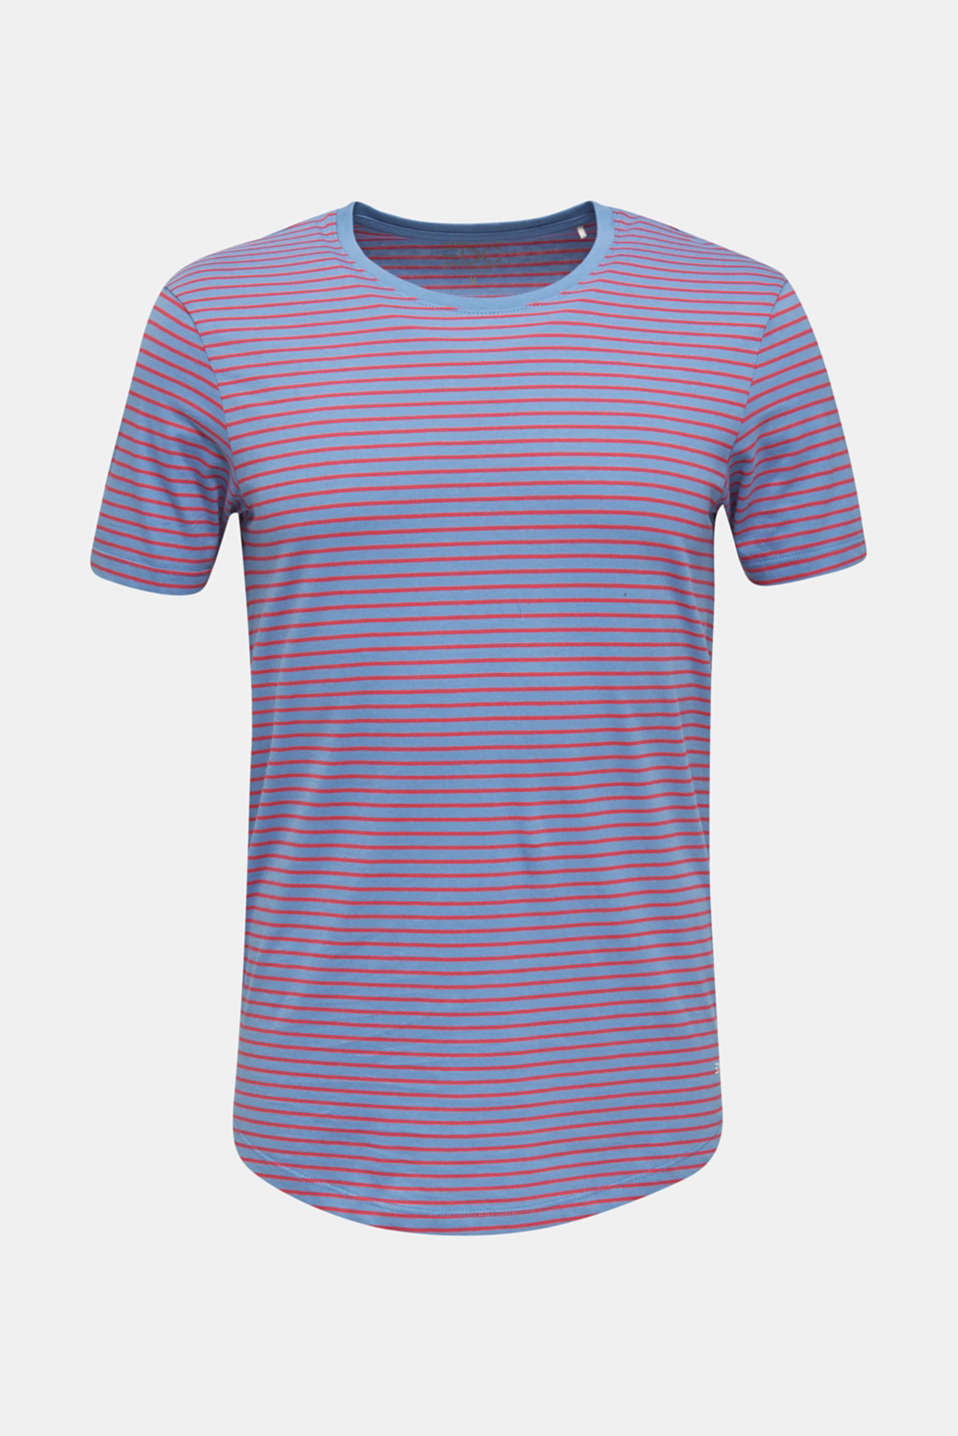 Jersey T-shirt with stripes, 100% cotton, LIGHT BLUE 3, detail image number 7